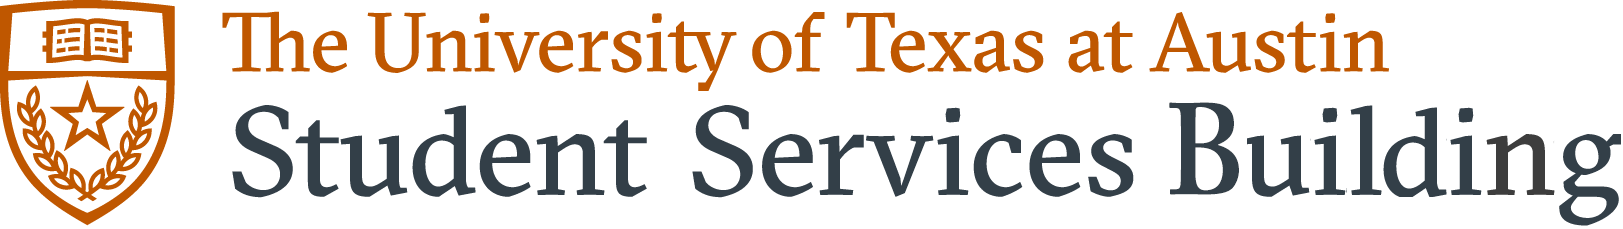 Student Services Building logo